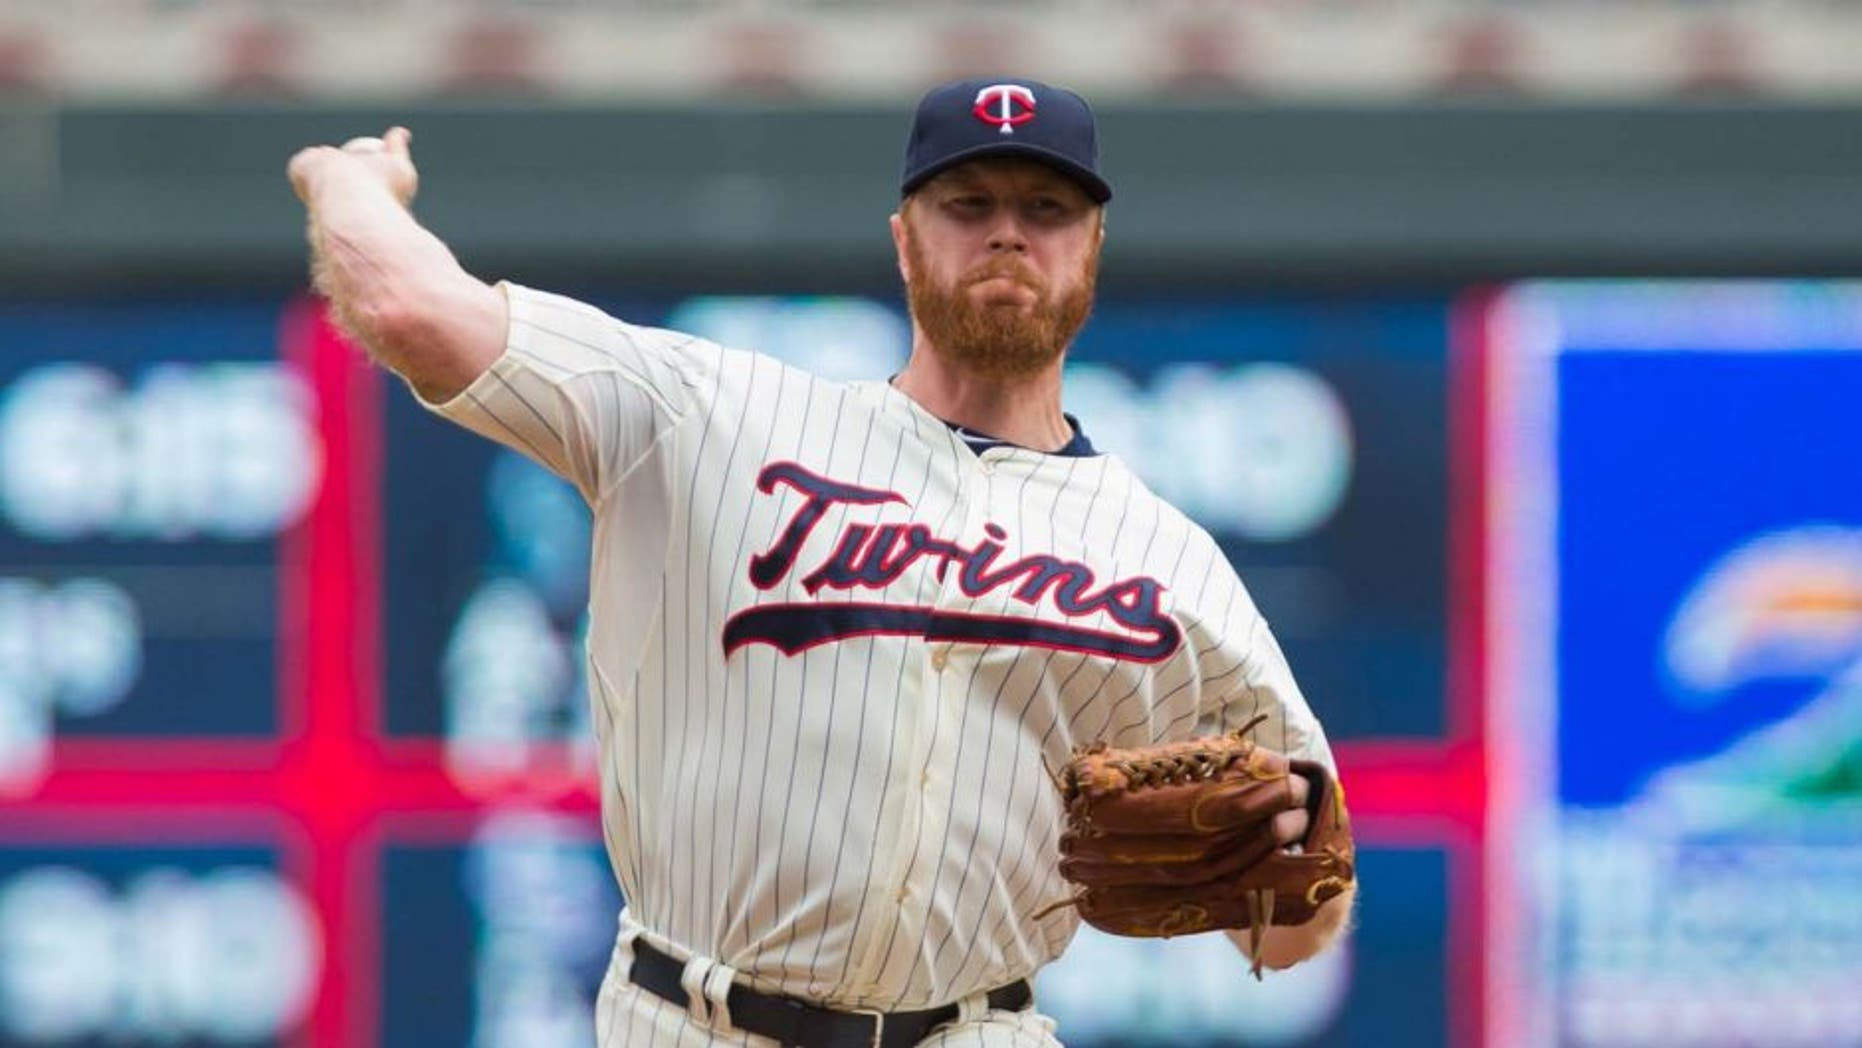 Jun 6, 2015; Minneapolis, MN, USA; Minnesota Twins relief pitcher Blaine Boyer pitches in the seventh inning against the Milwaukee Brewers at Target Field. The Milwaukee Brewers beat the Minnesota Twins 4-2.